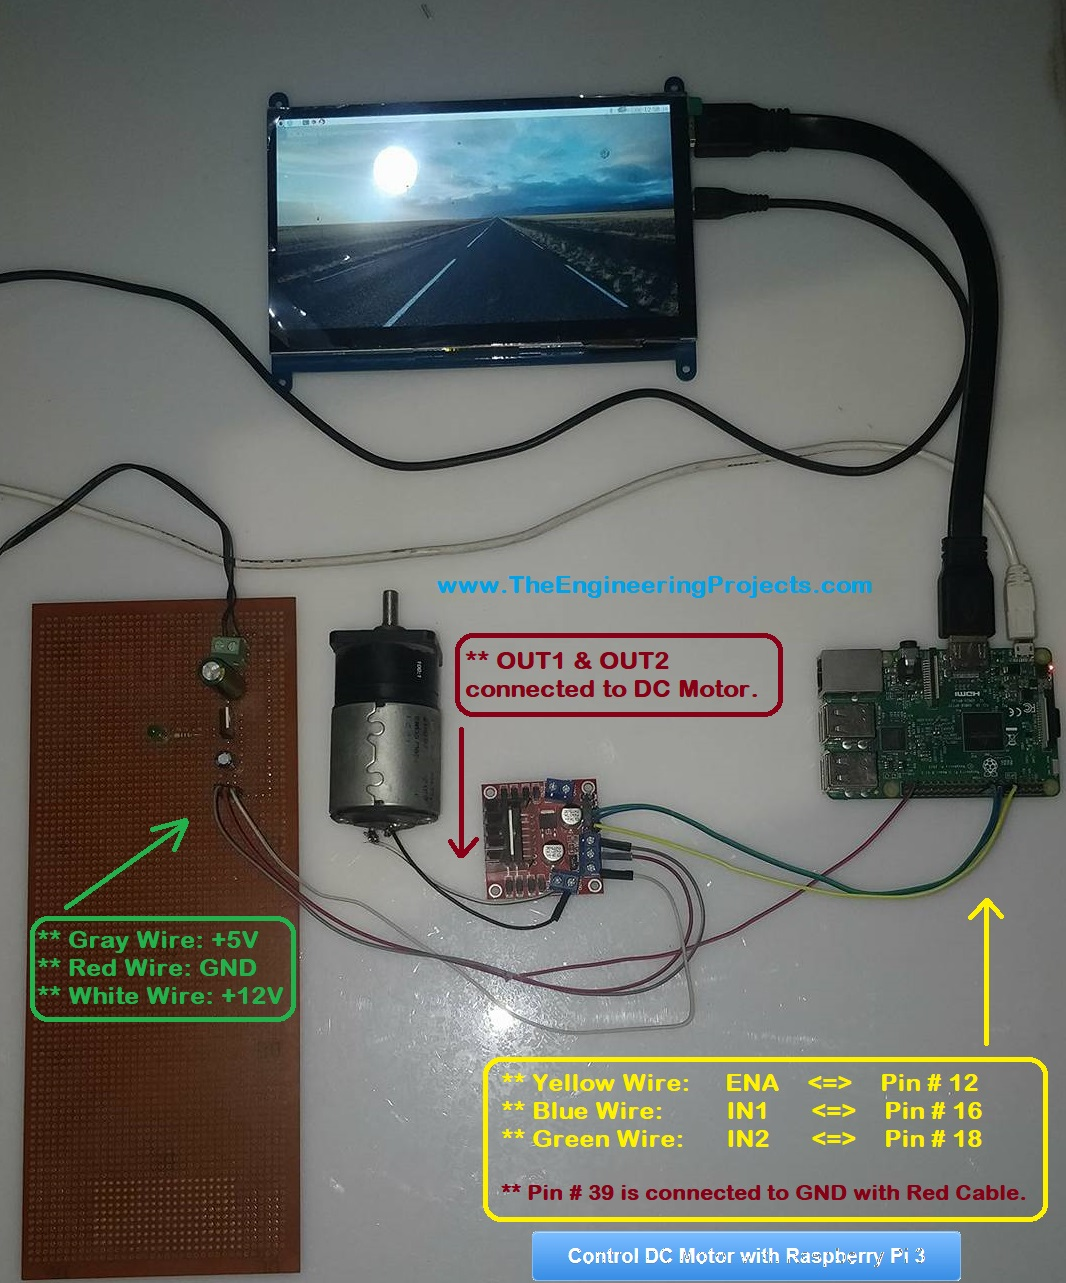 Simply As An Onoff Switch To Turn On Or Shut Off The Dc Motor